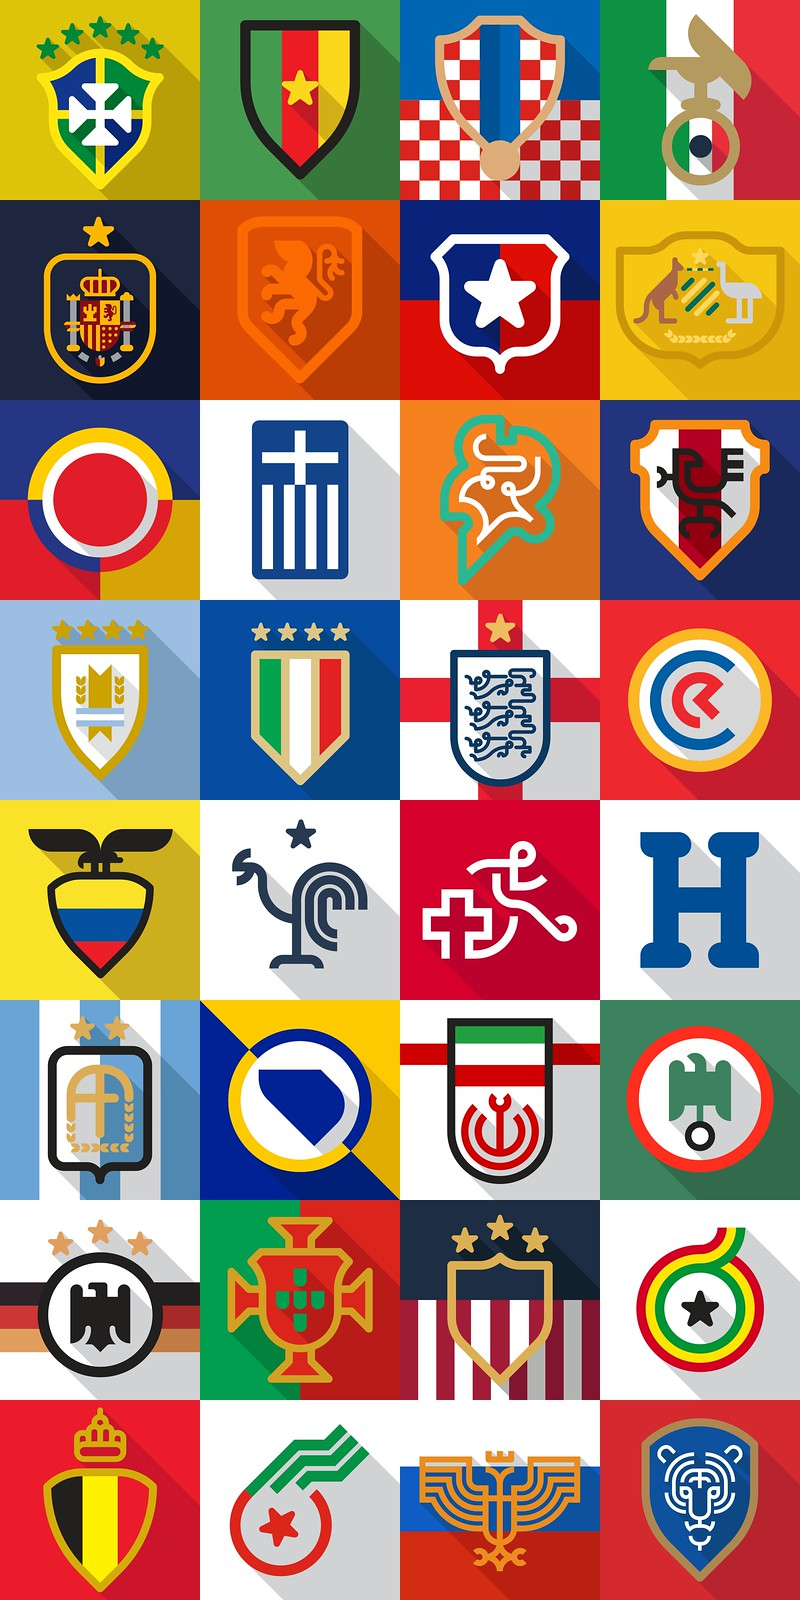 2014 Football World Cup team icons by Daniel Nyari